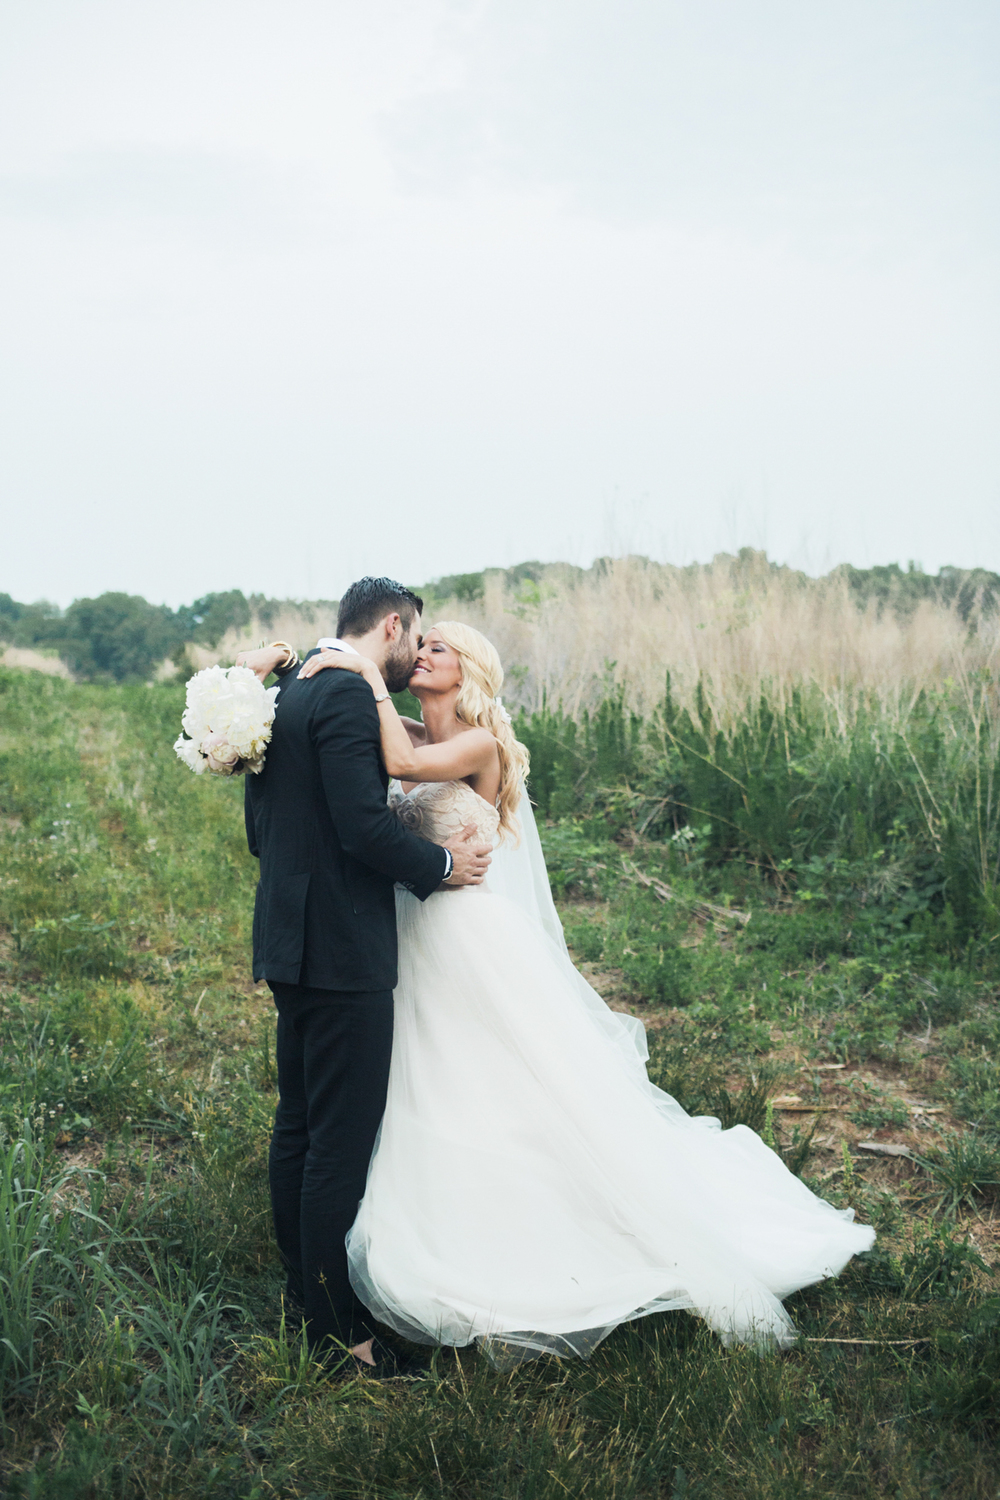 south_carolina_farm_wedding_rustic_chic_surprise_secret_luxe_wedding_bachelorette_emily_maynard_real_weddings-34.jpg